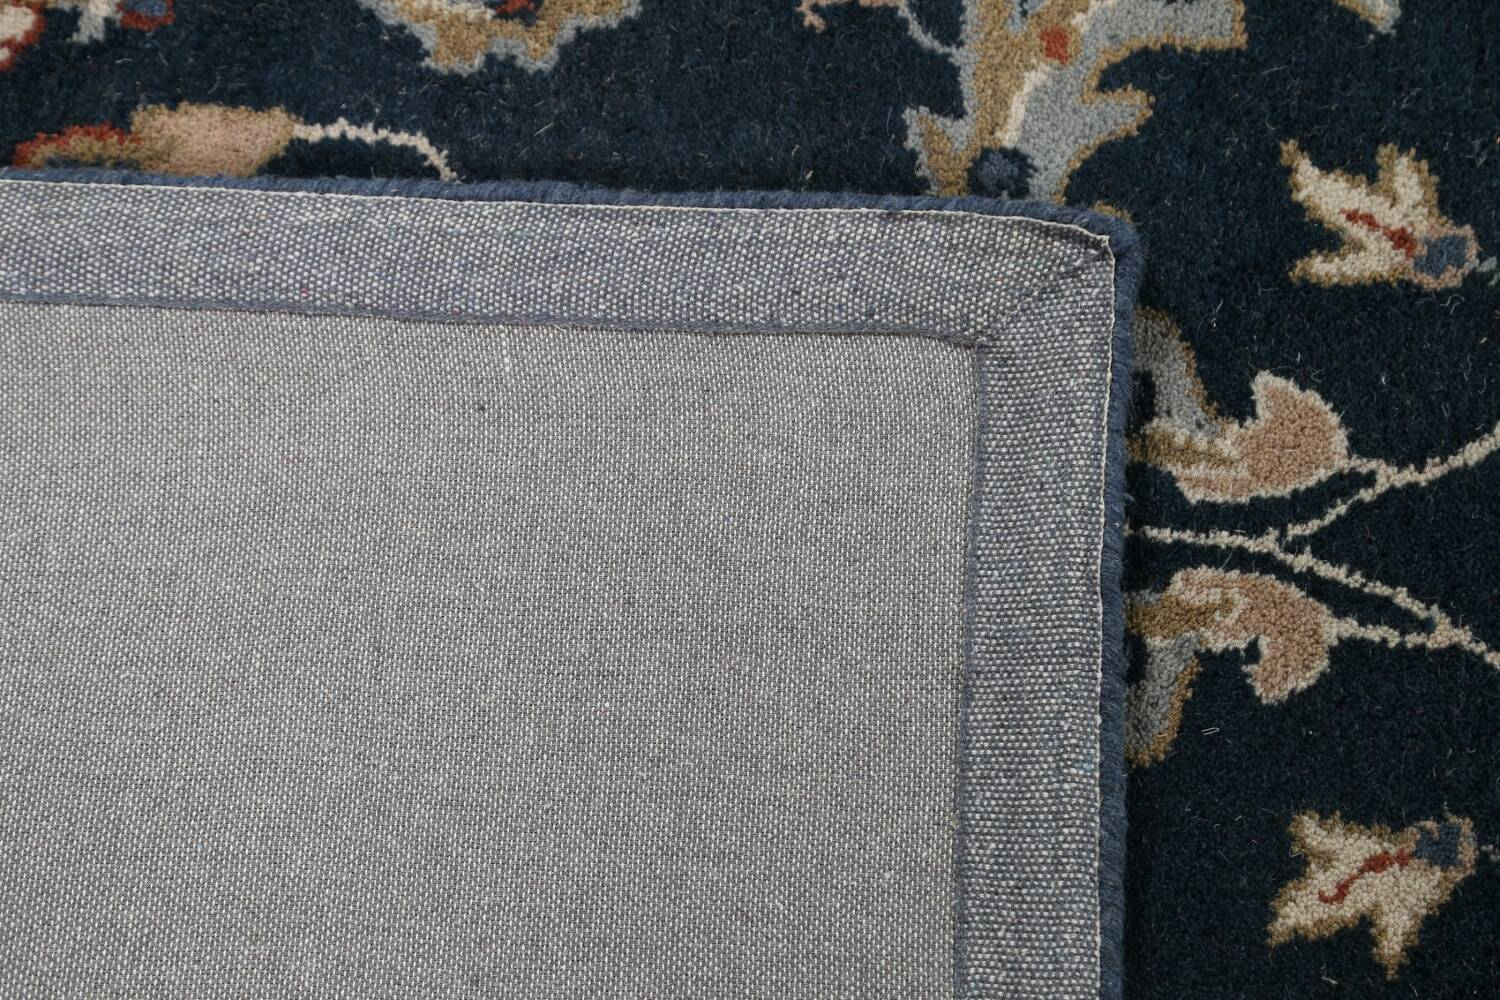 Floral Agra Wool Area Rug 5x8 image 8